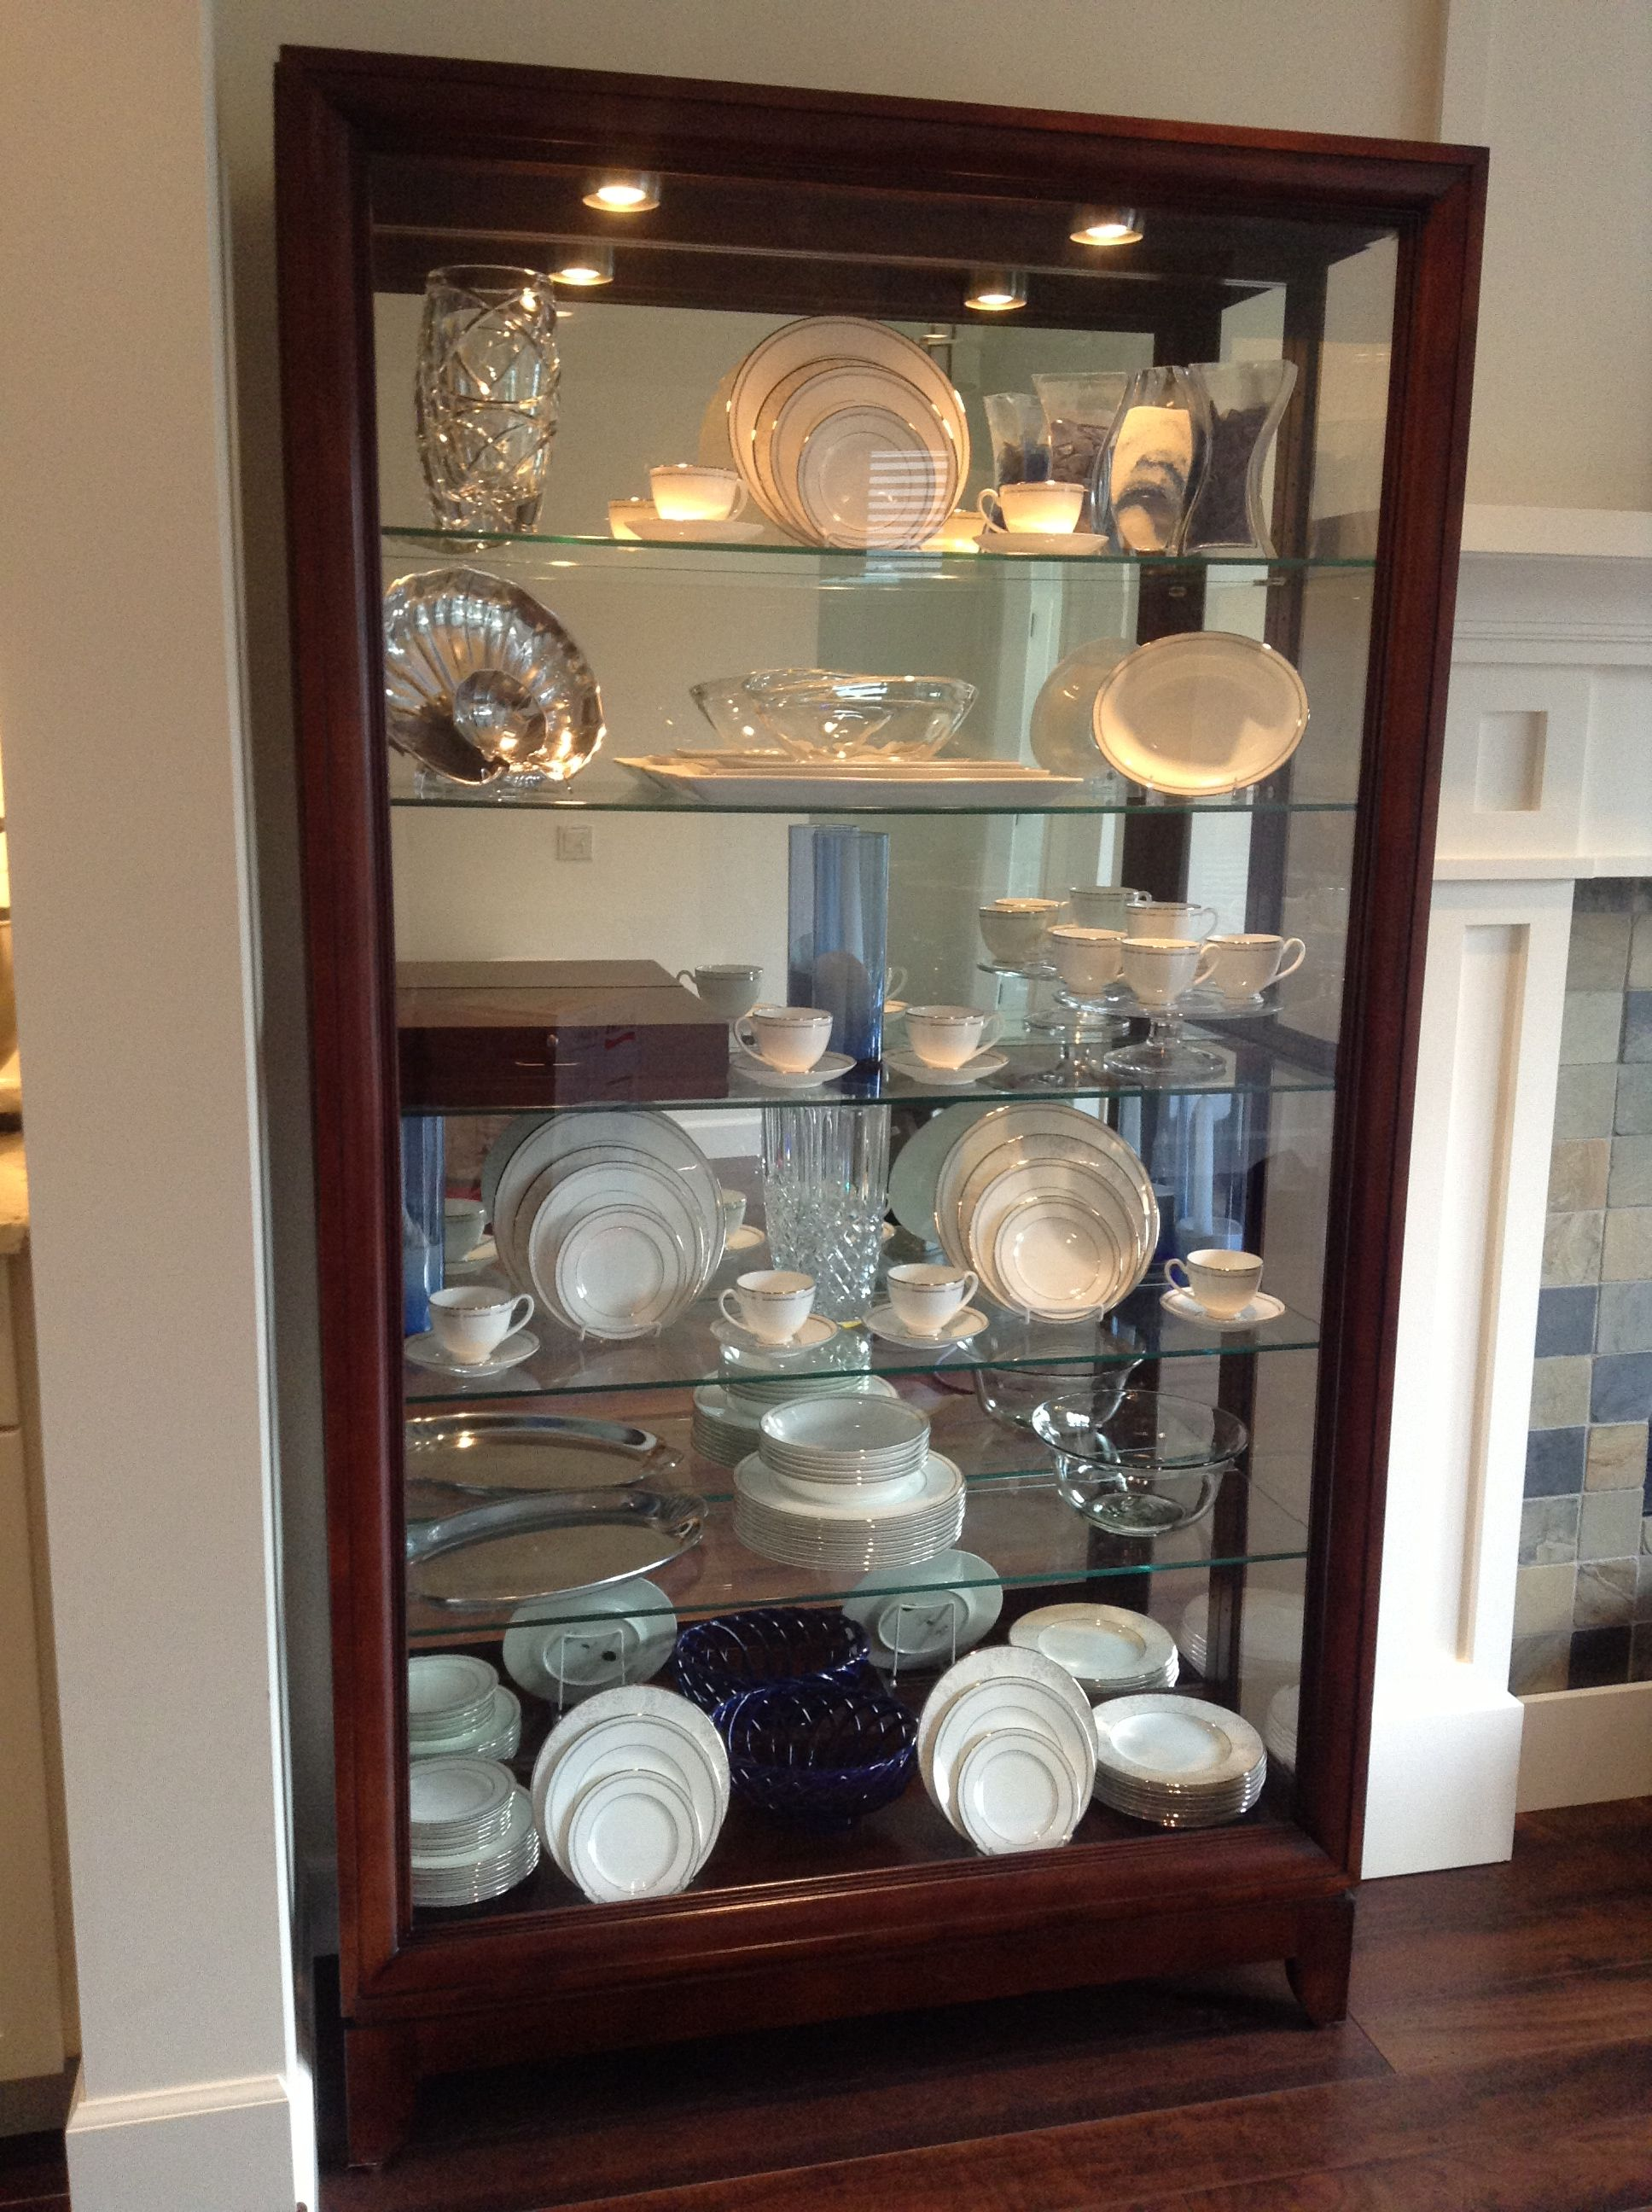 Dish Display Cabinet China Cabinet Display Idea For The Home Pinterest China